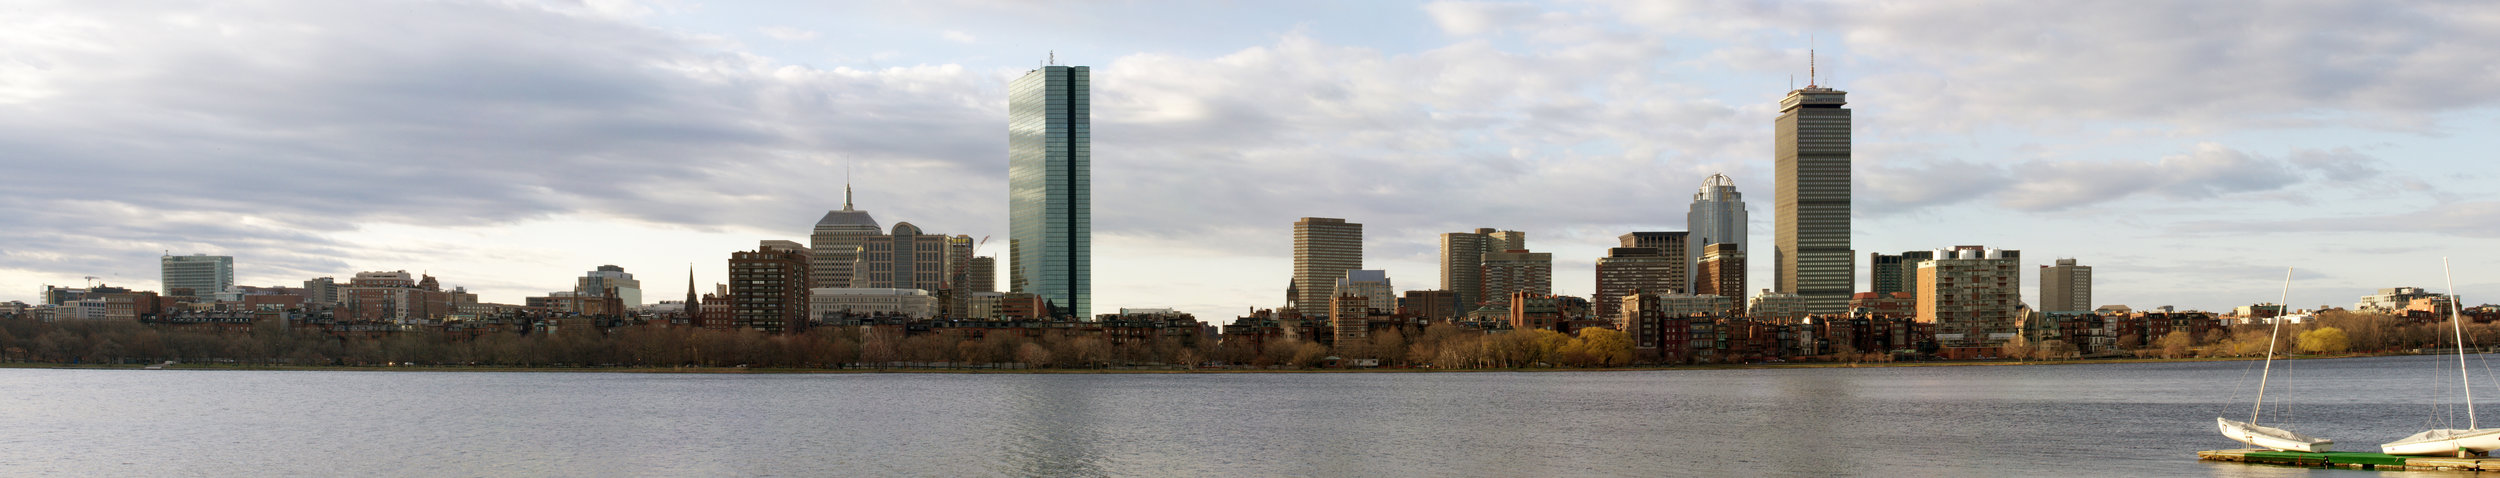 A panorama of the cityscape from the opposite side of the Charles River.